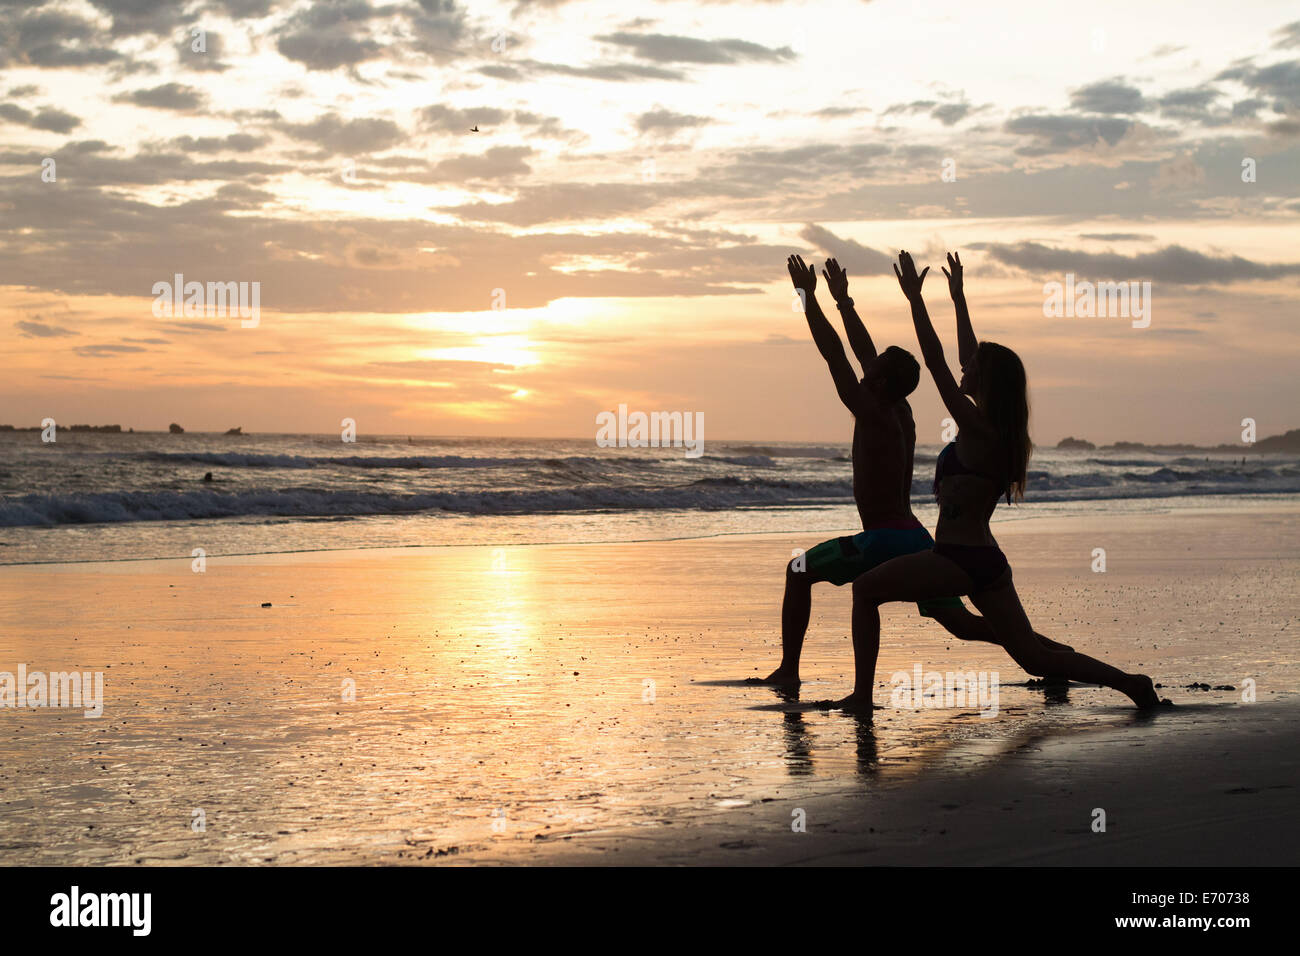 Couple doing stretching exercises on beach at sunset, Nosara, Guanacaste, Costa Rica - Stock Image